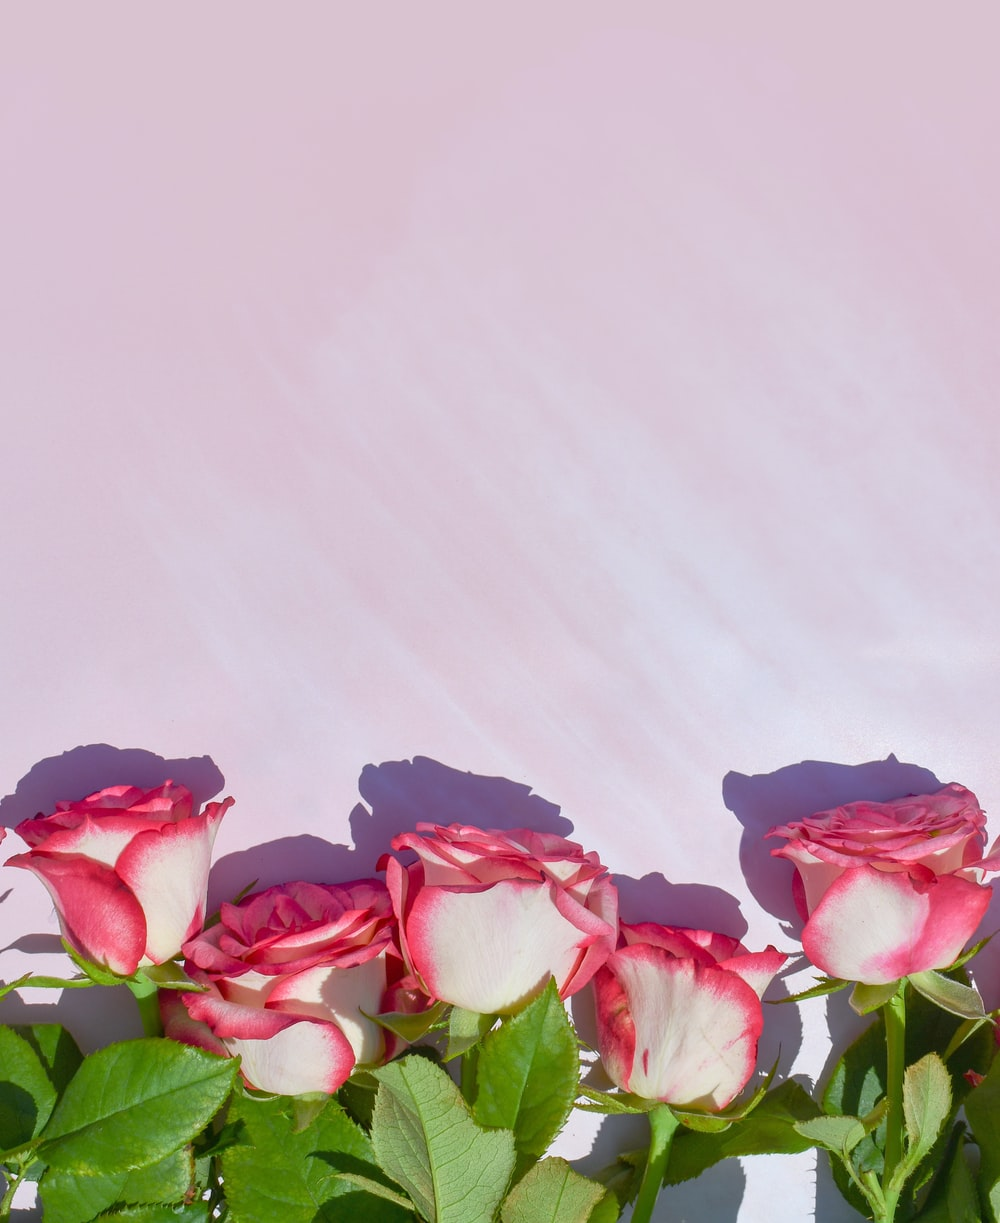 pink and red roses on white textile